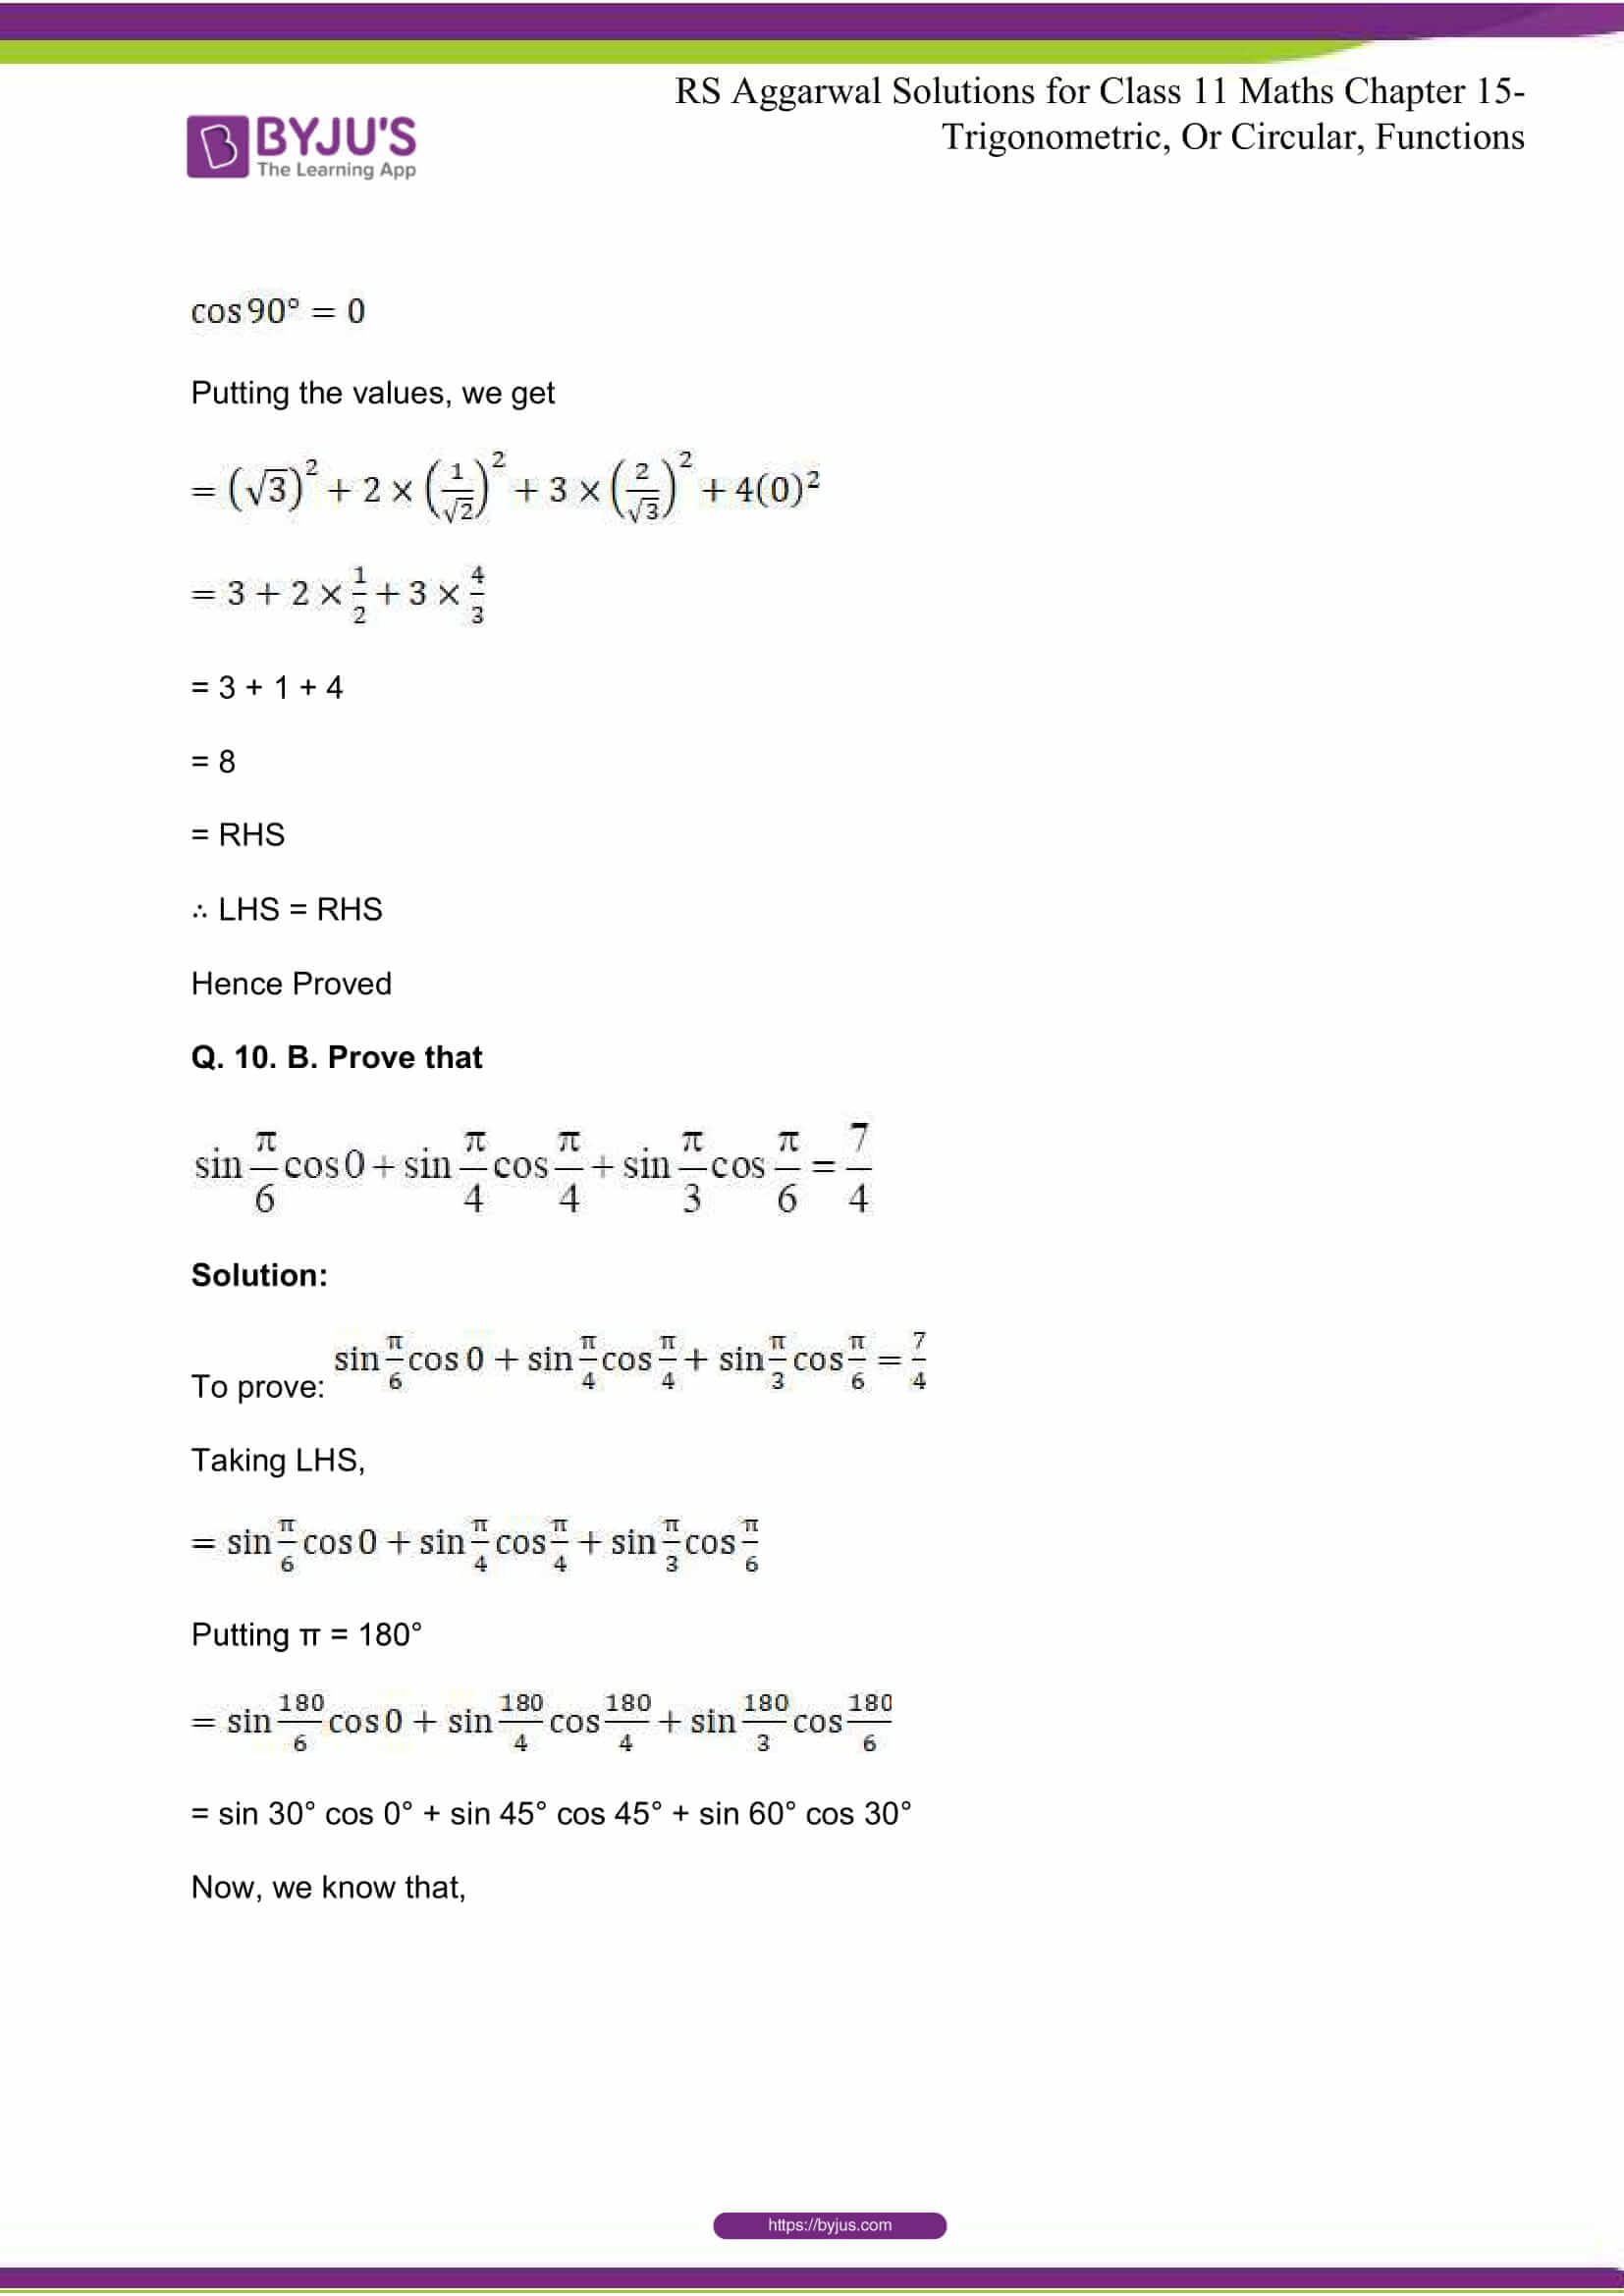 rsaggarwal solutions class 11 maths chapter 15 026